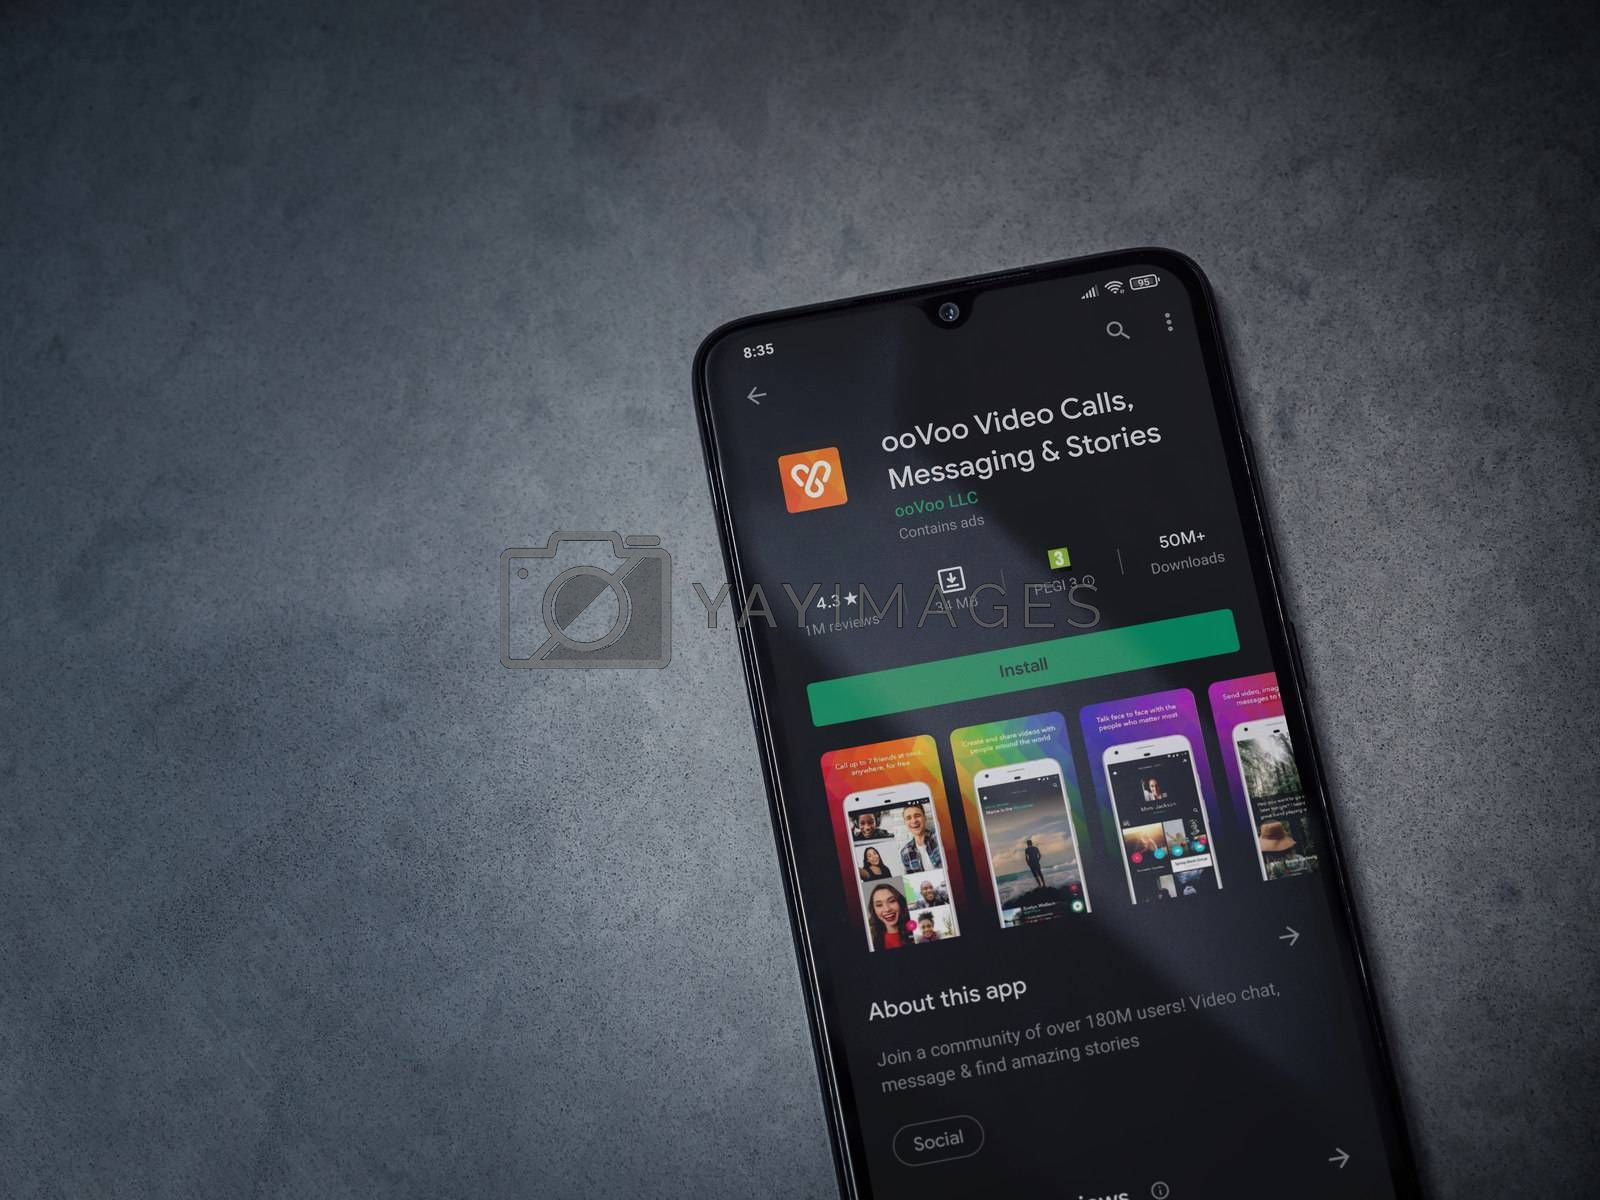 Lod, Israel - July 8, 2020: ooVoo app play store page on the display of a black mobile smartphone on dark marble stone background. Top view flat lay with copy space.